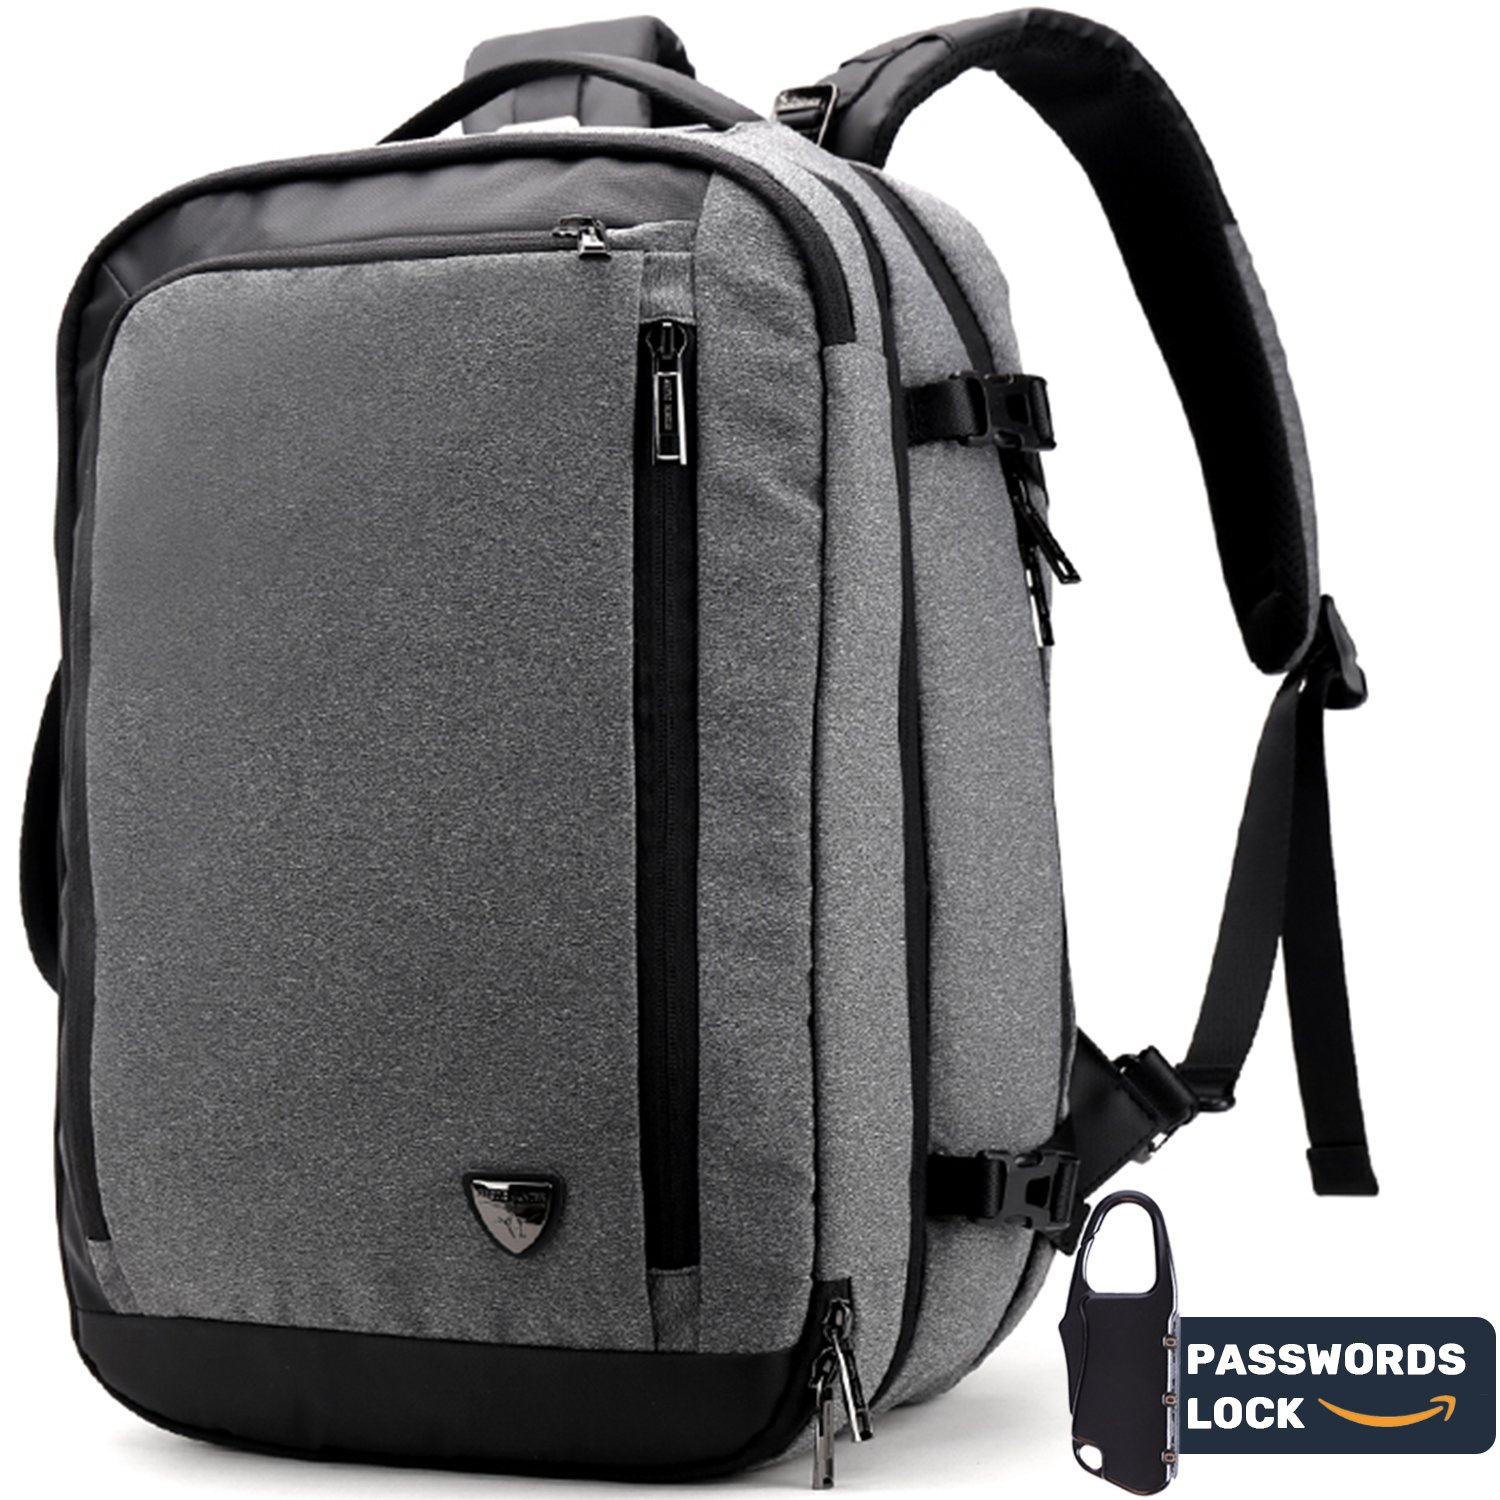 Travel Laptop Backpack for Men Women, College Student Backpack 2 in 1 Multi-wear Innovative Anti-theft Water Resistant Backpack for Work Business School Travel fits for 15.6 Laptop Grey